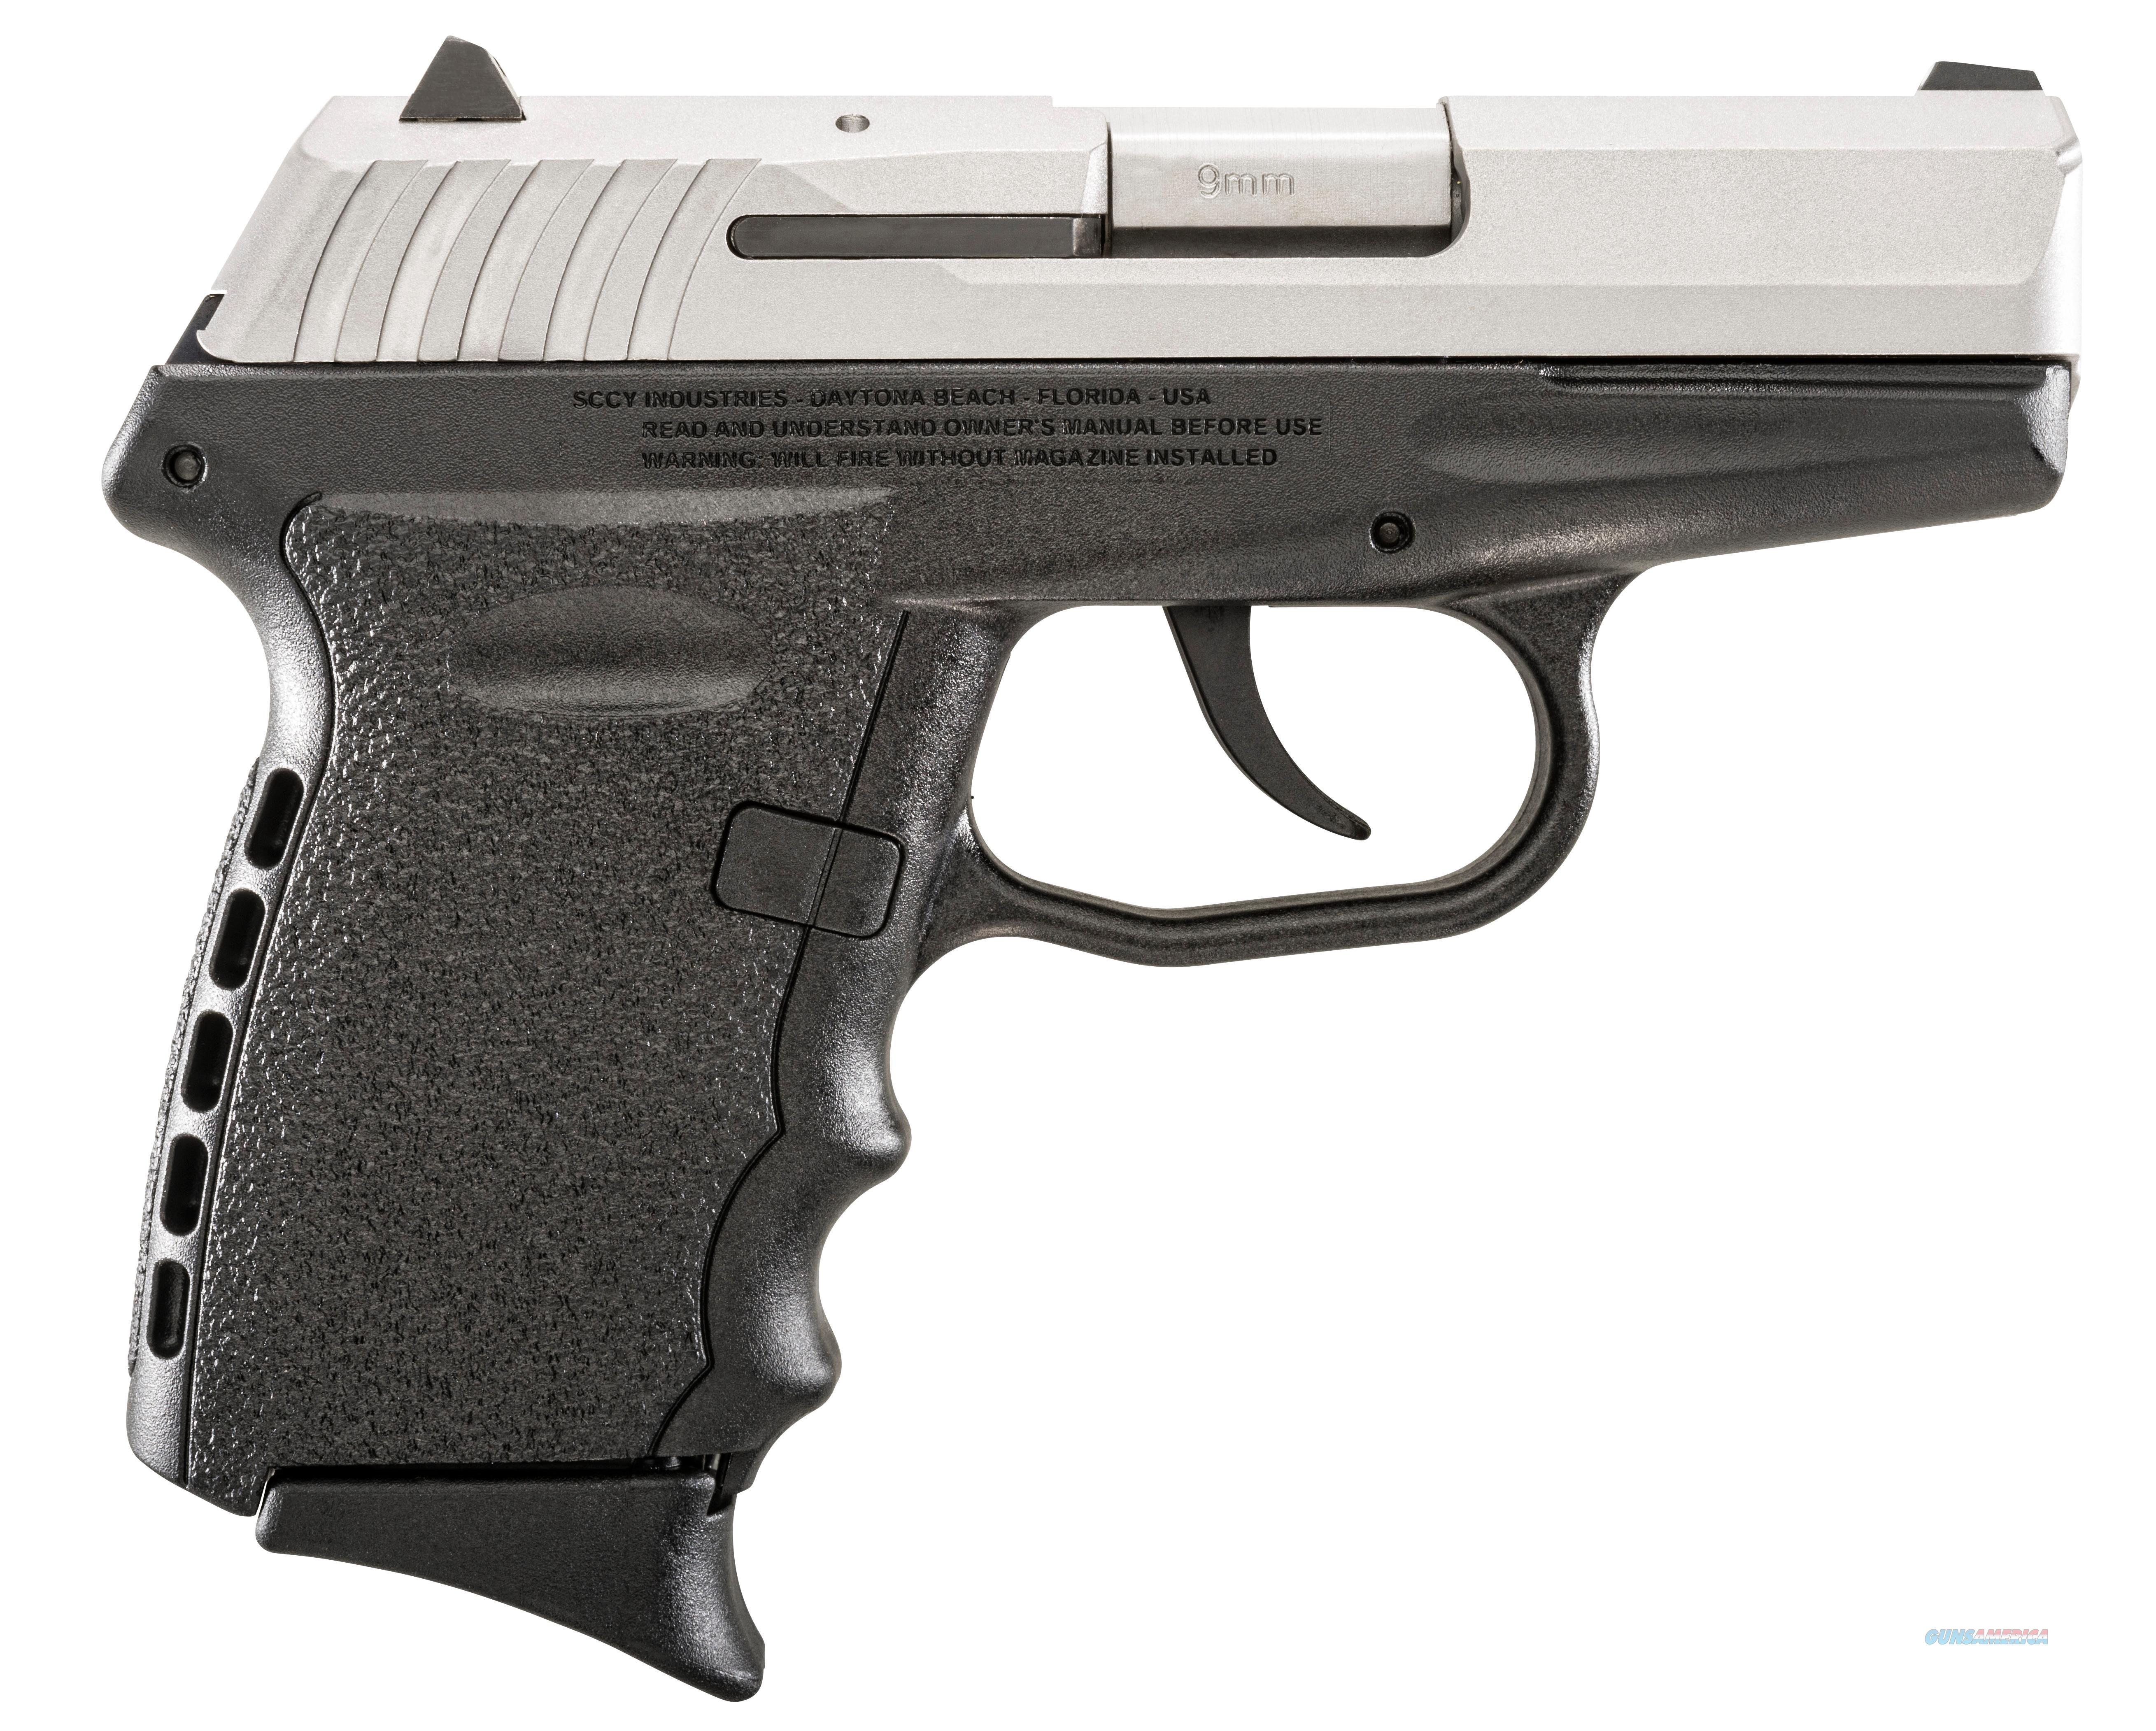 Sccy Industries Cpx2-Tt Pistol Dao 9Mm 10Rd Ss/Black W/O Safety CPX2-TT  Guns > Pistols > S Misc Pistols